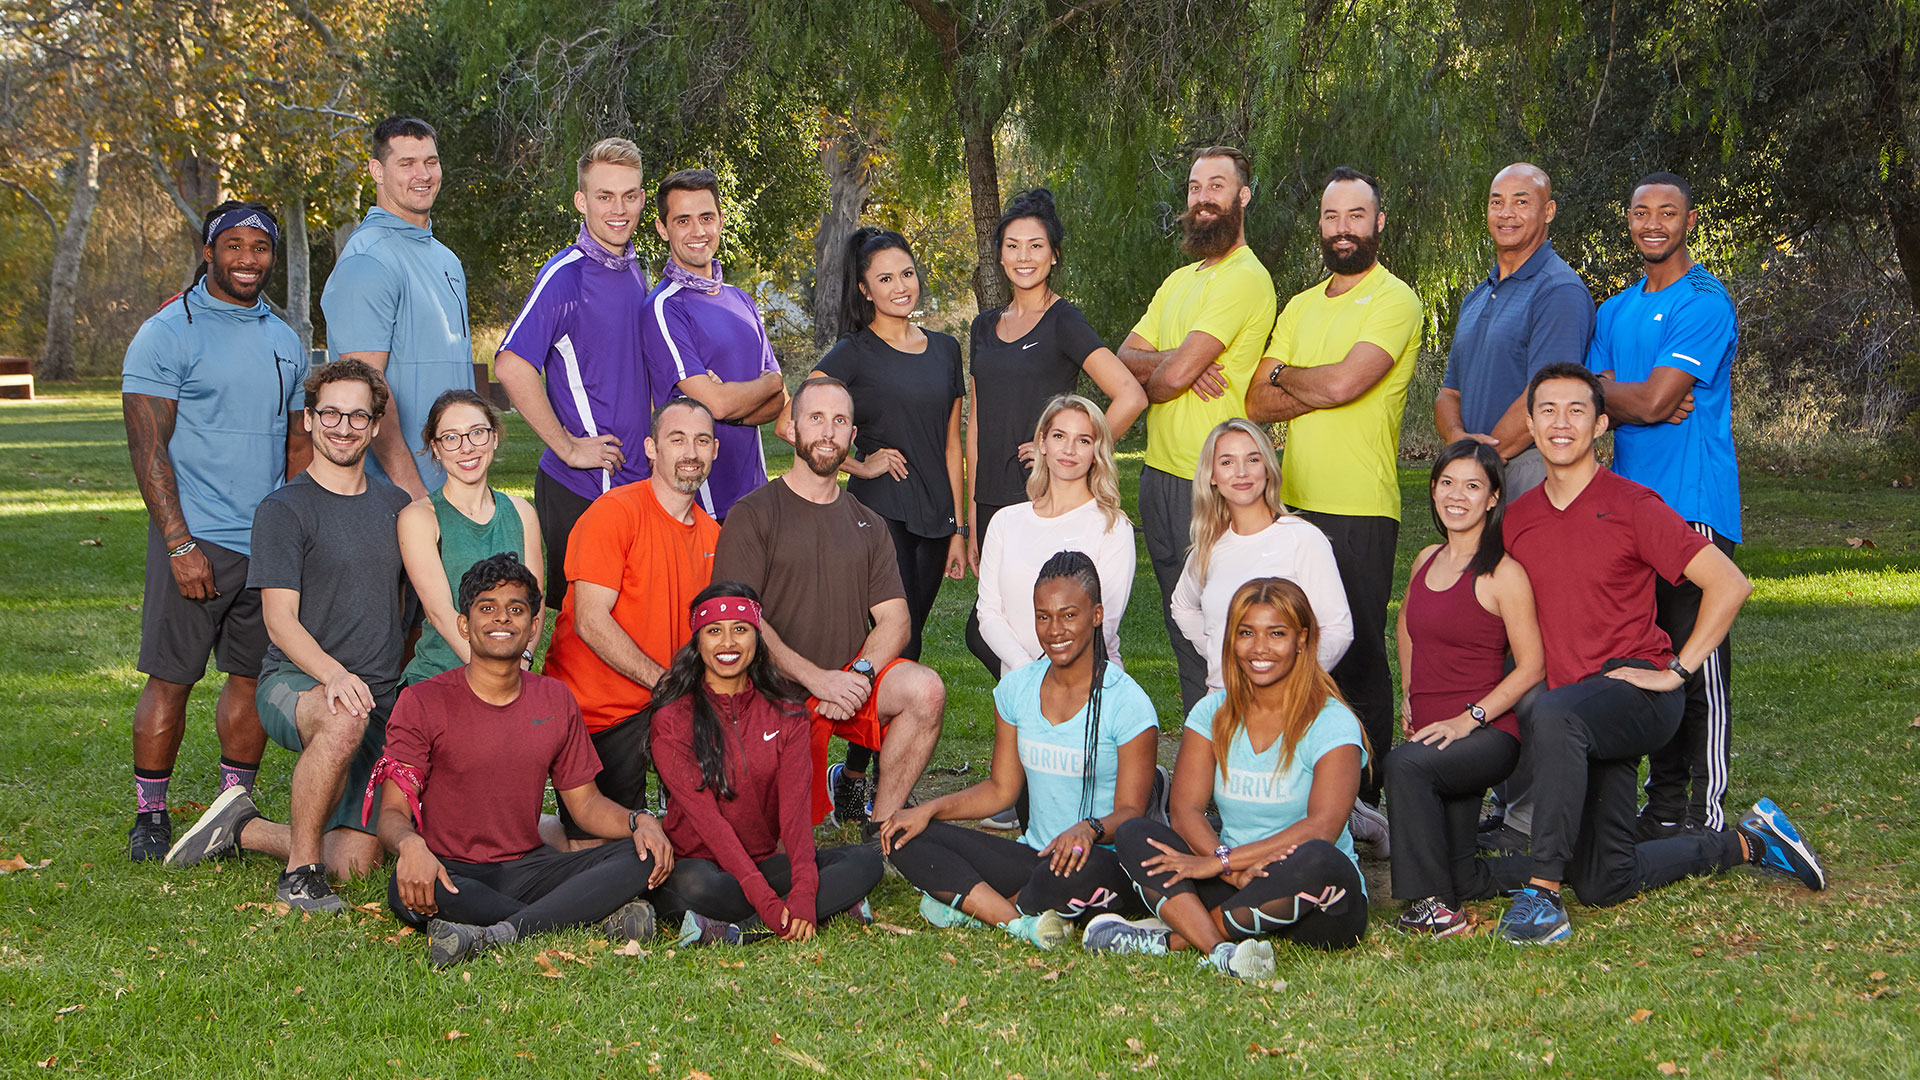 Who's In The Cast Of The Amazing Race Season 32? - The Amazing Race Photos  - CBS.com